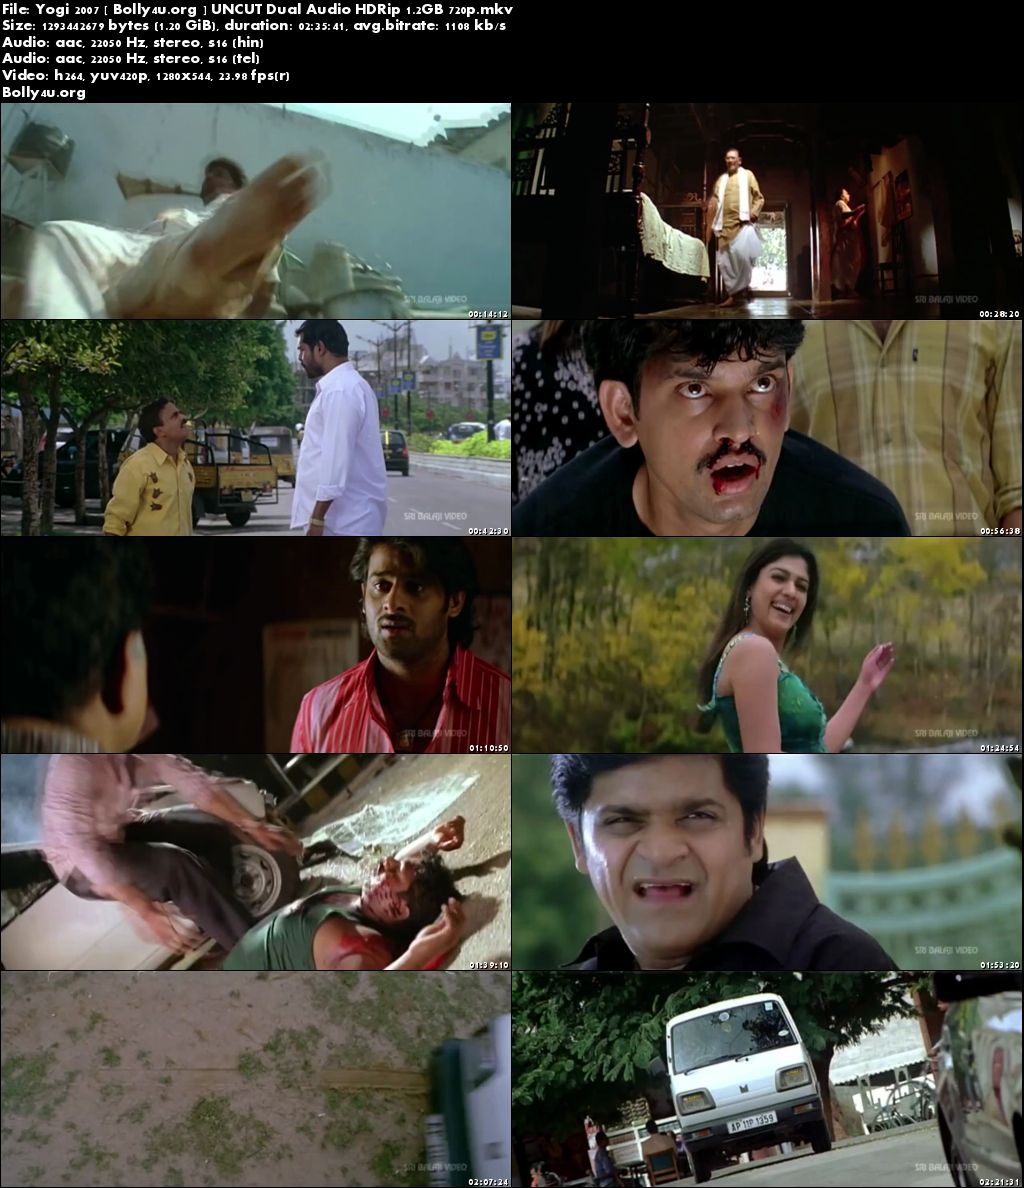 Yogi 2007 HDRip UNCUT Hindi Dubbed Dual Audio 720p Download